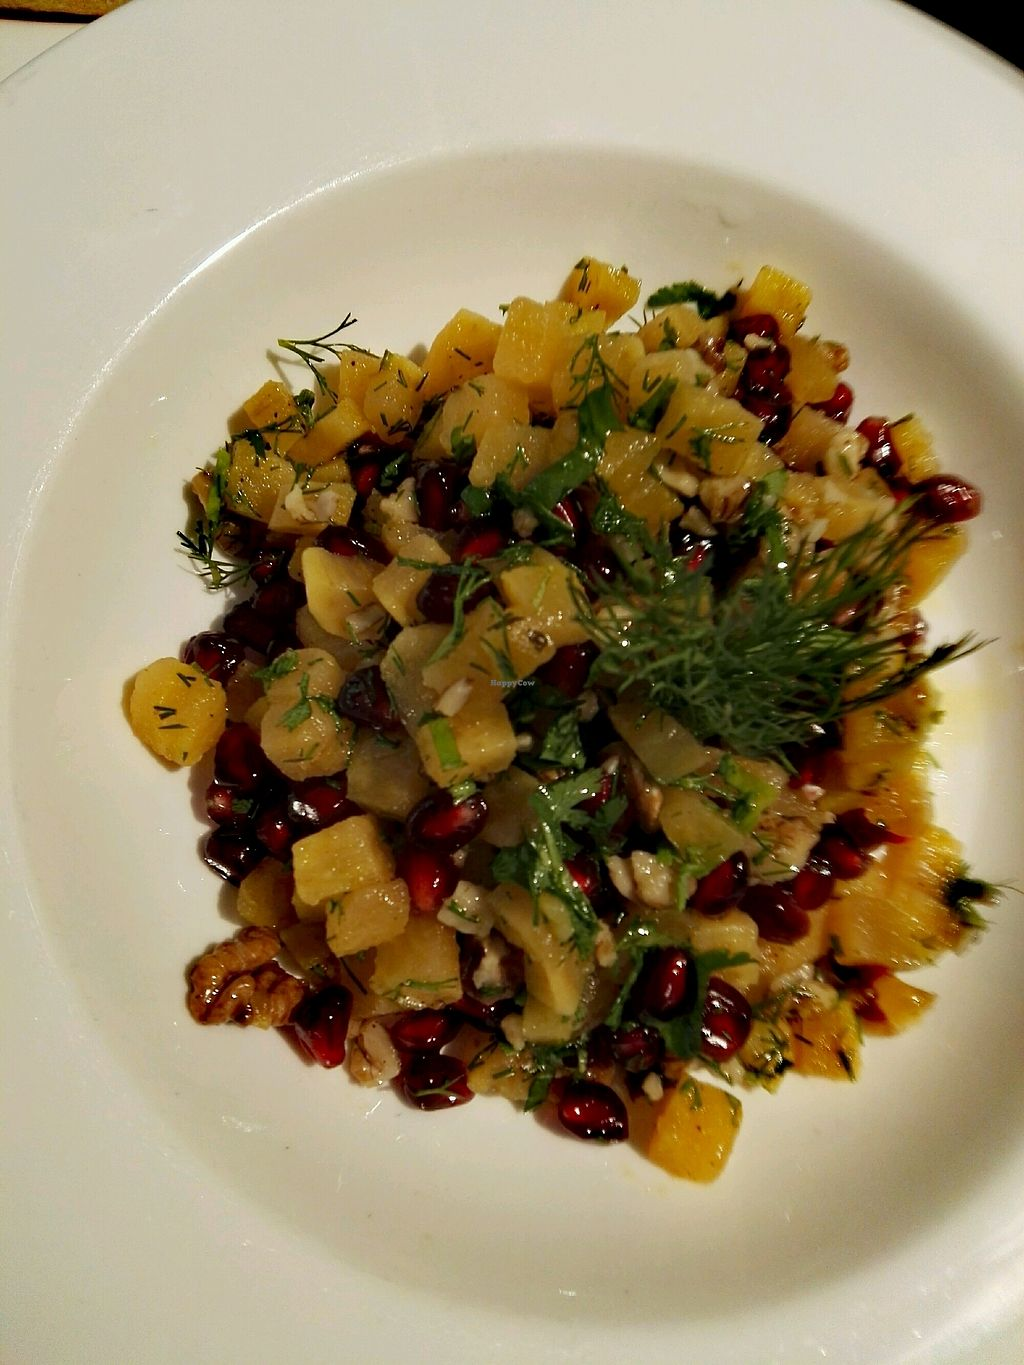 """Photo of Ecodemia  by <a href=""""/members/profile/Elainek921"""">Elainek921</a> <br/>sweet potato and pomegranate salad <br/> December 30, 2017  - <a href='/contact/abuse/image/108231/341043'>Report</a>"""